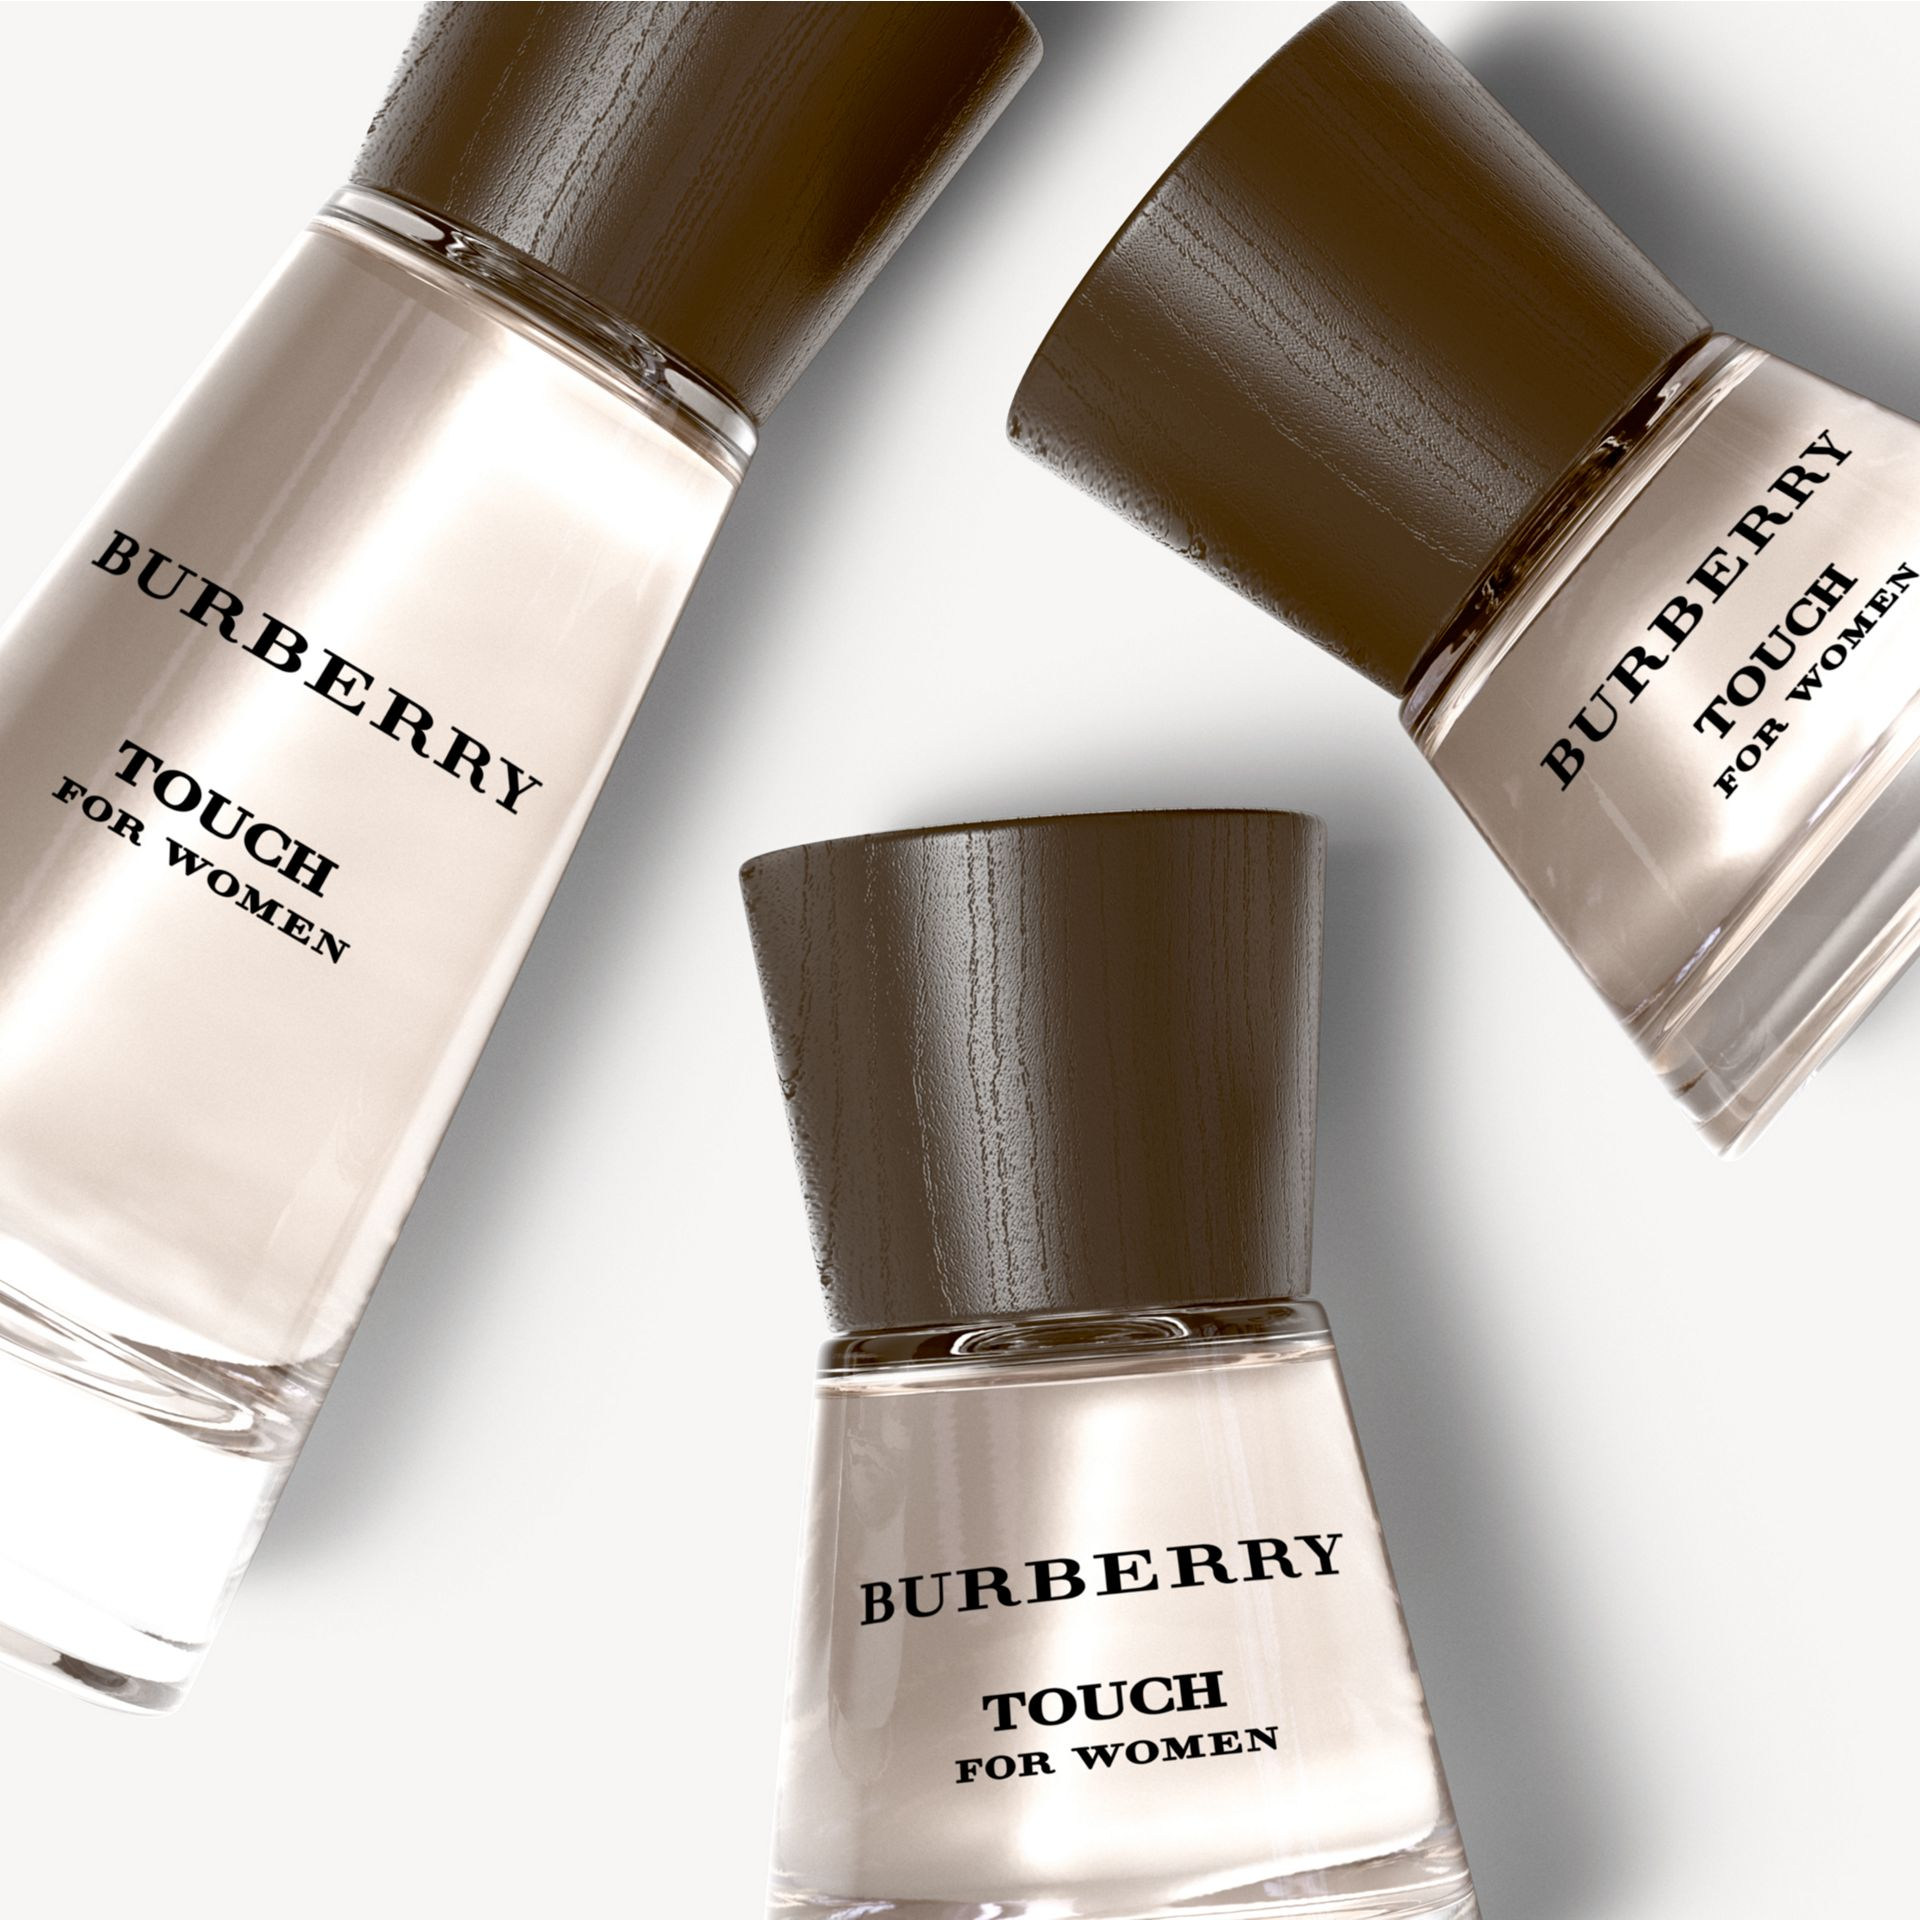 Burberry Touch For Women Eau De Parfum 30ml - Women | Burberry - gallery image 1